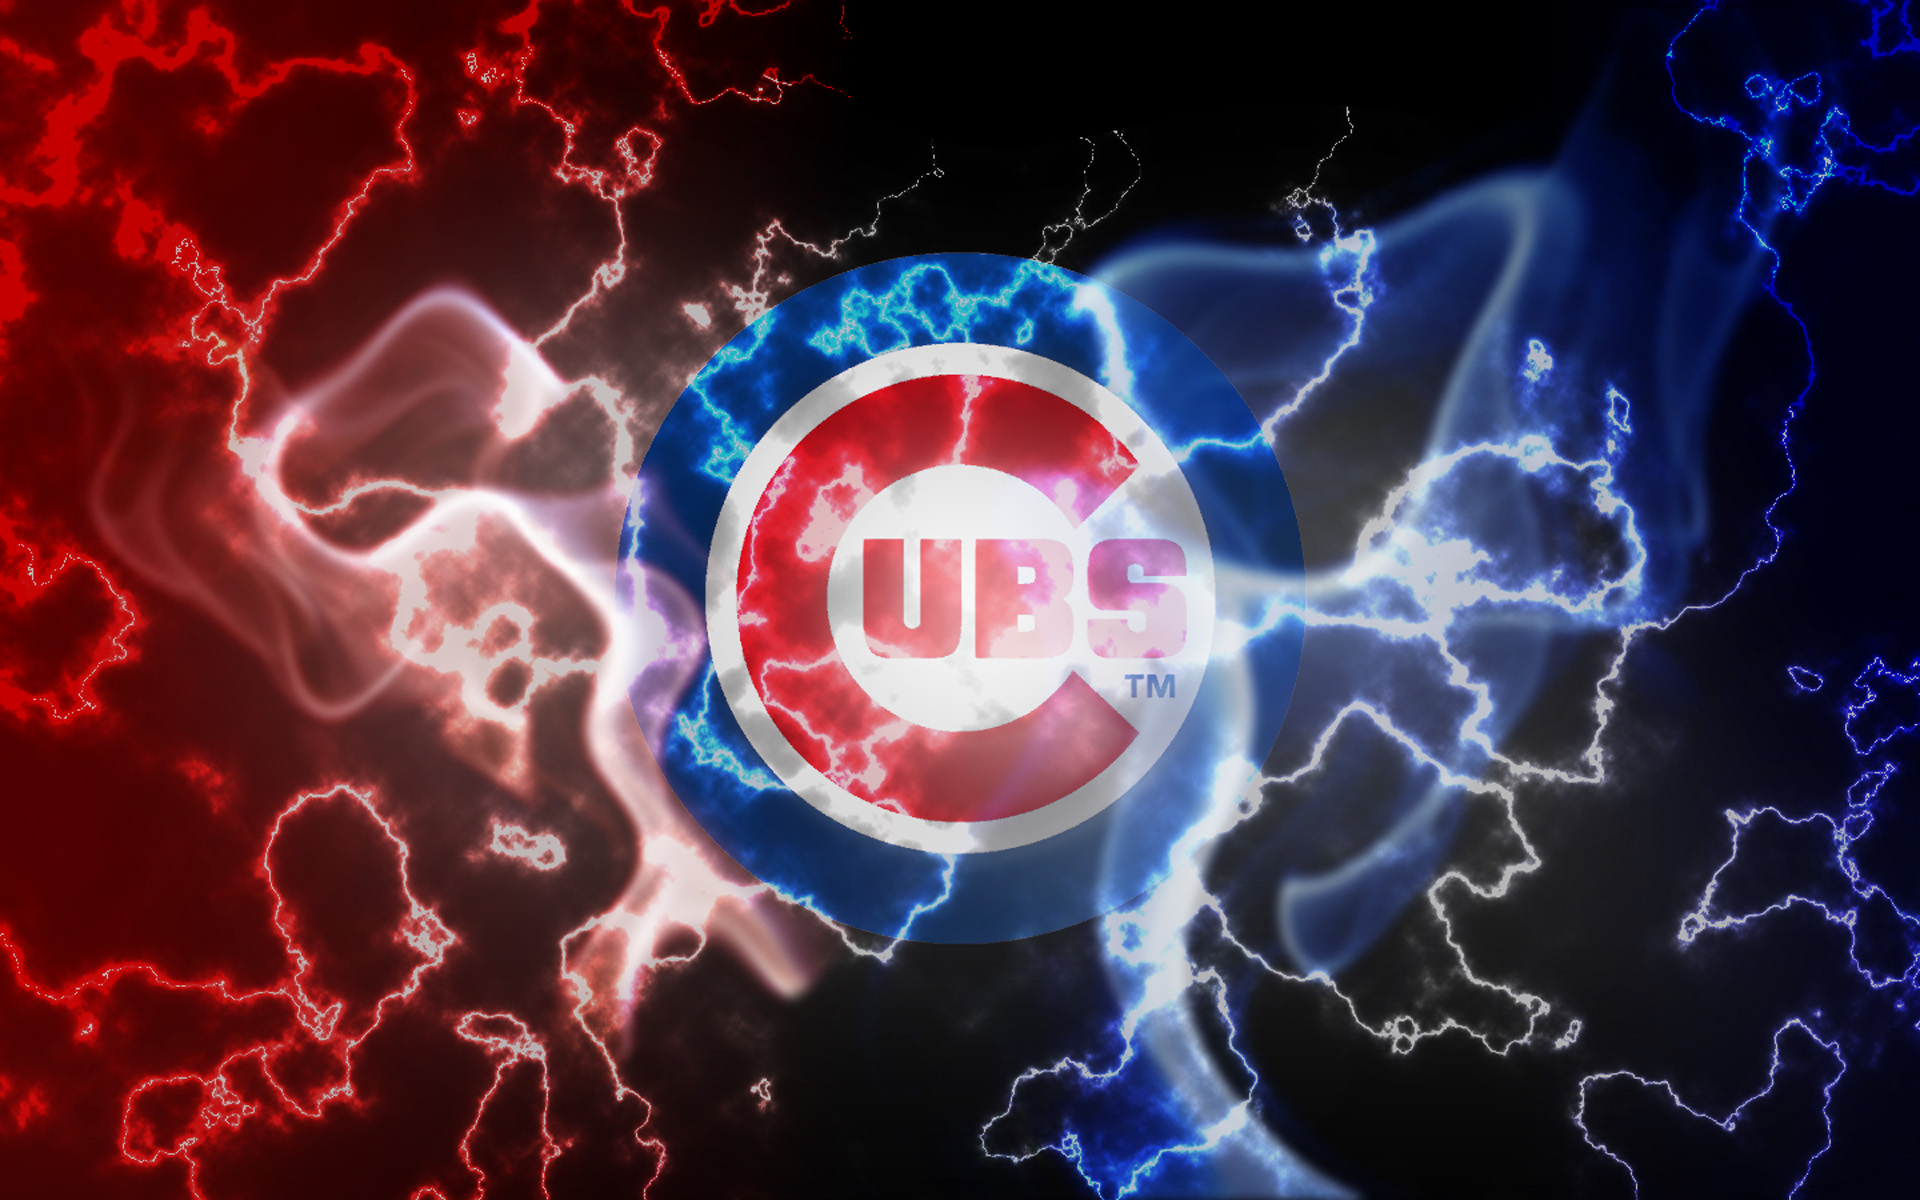 Chicago Cubs HD Wallpaper HD Wallpapers HD Backgrounds 1920x1200